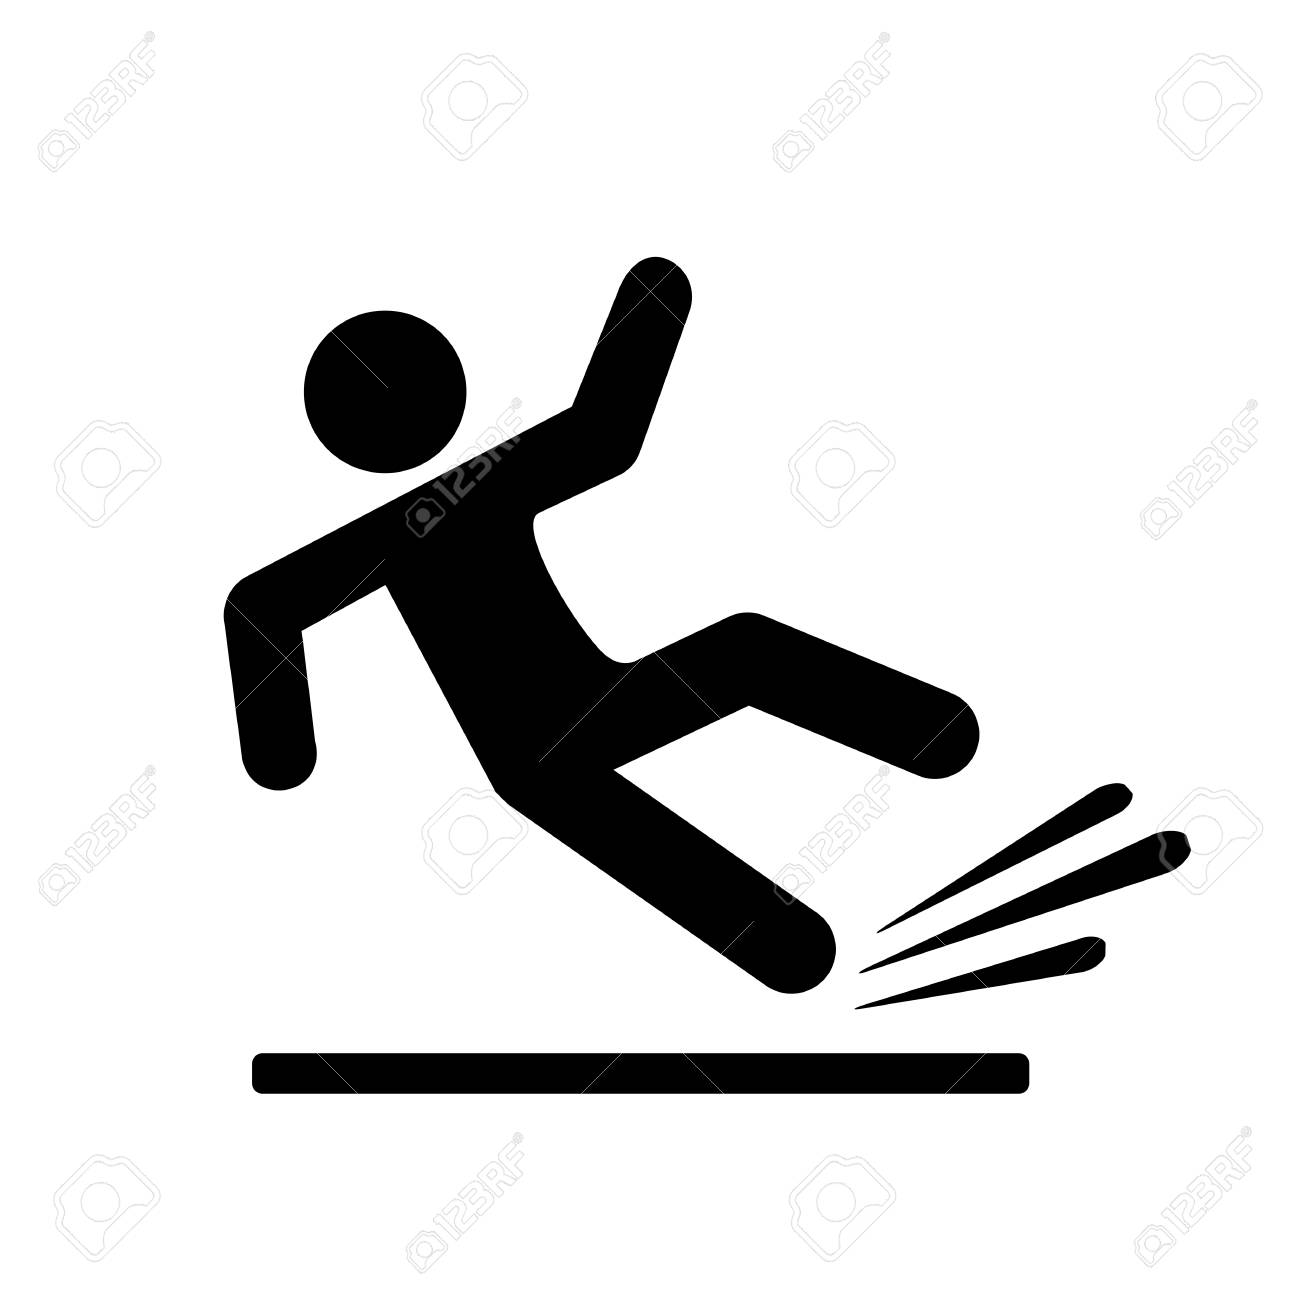 Falling person silhouette pictogram - 91959664